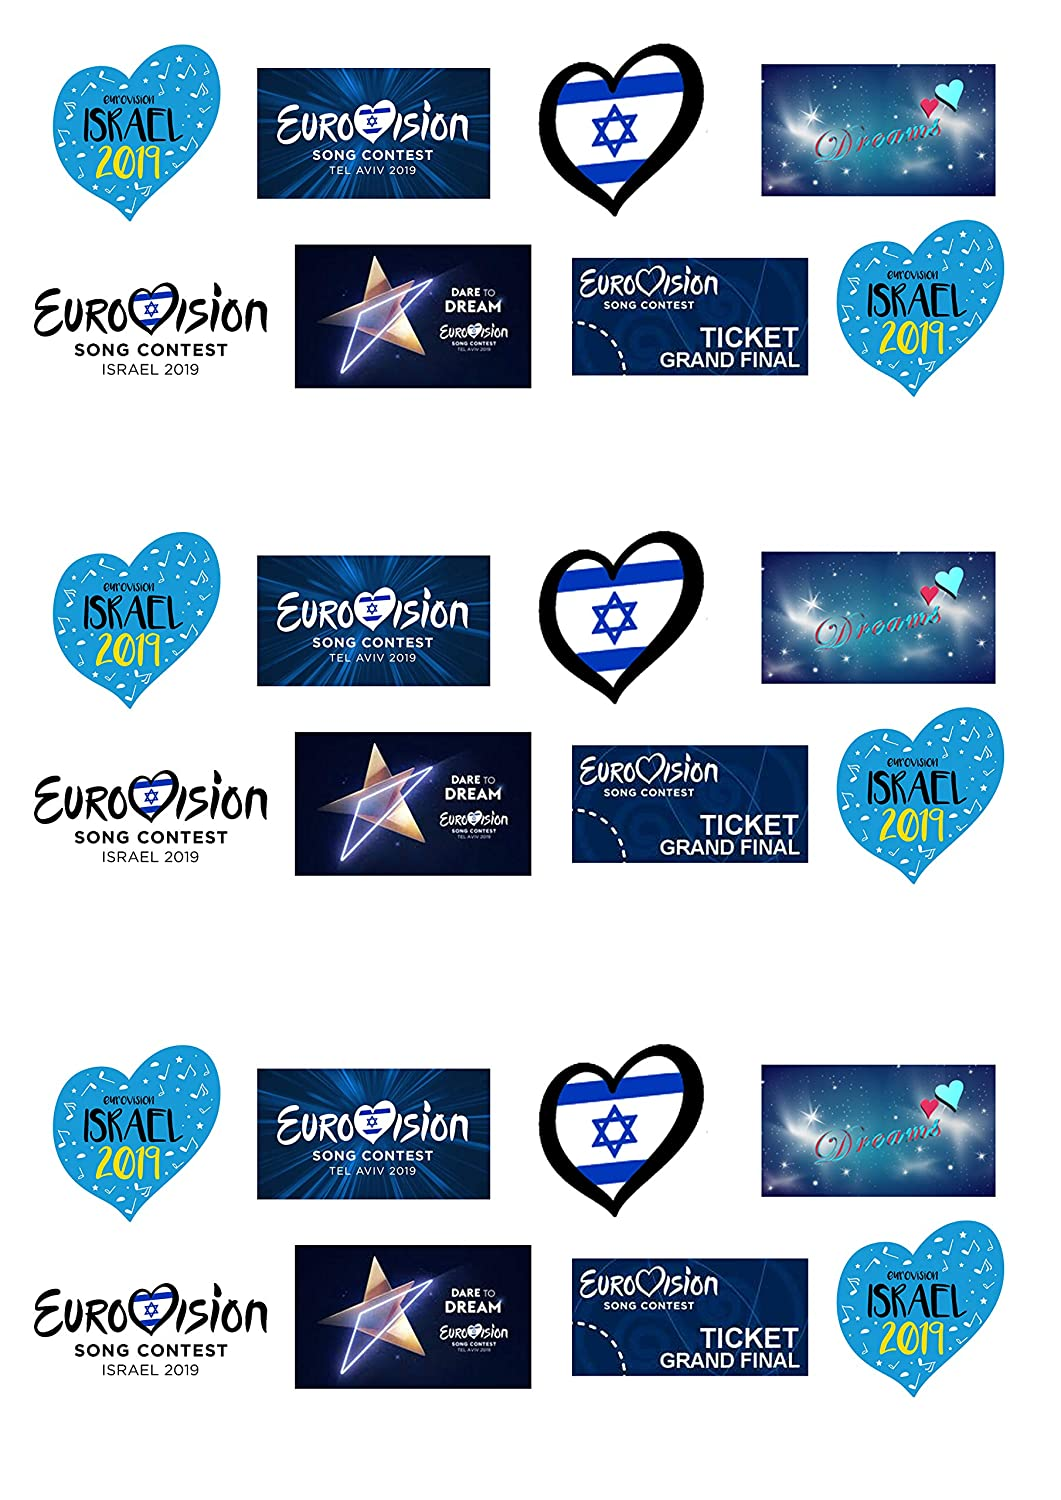 24 Stand Up Eurovision 2019 Song Contest Israel Themed Edible Wafer Paper Cake Toppers Decorations